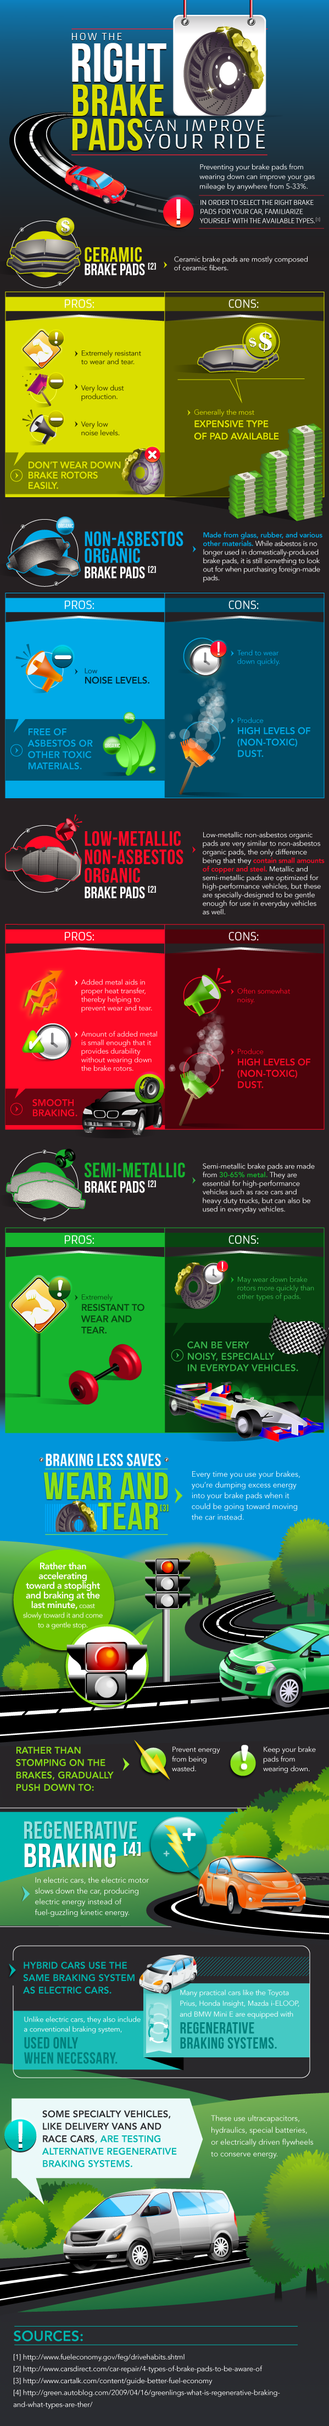 Right Brakers - Infographic by SE7ENART